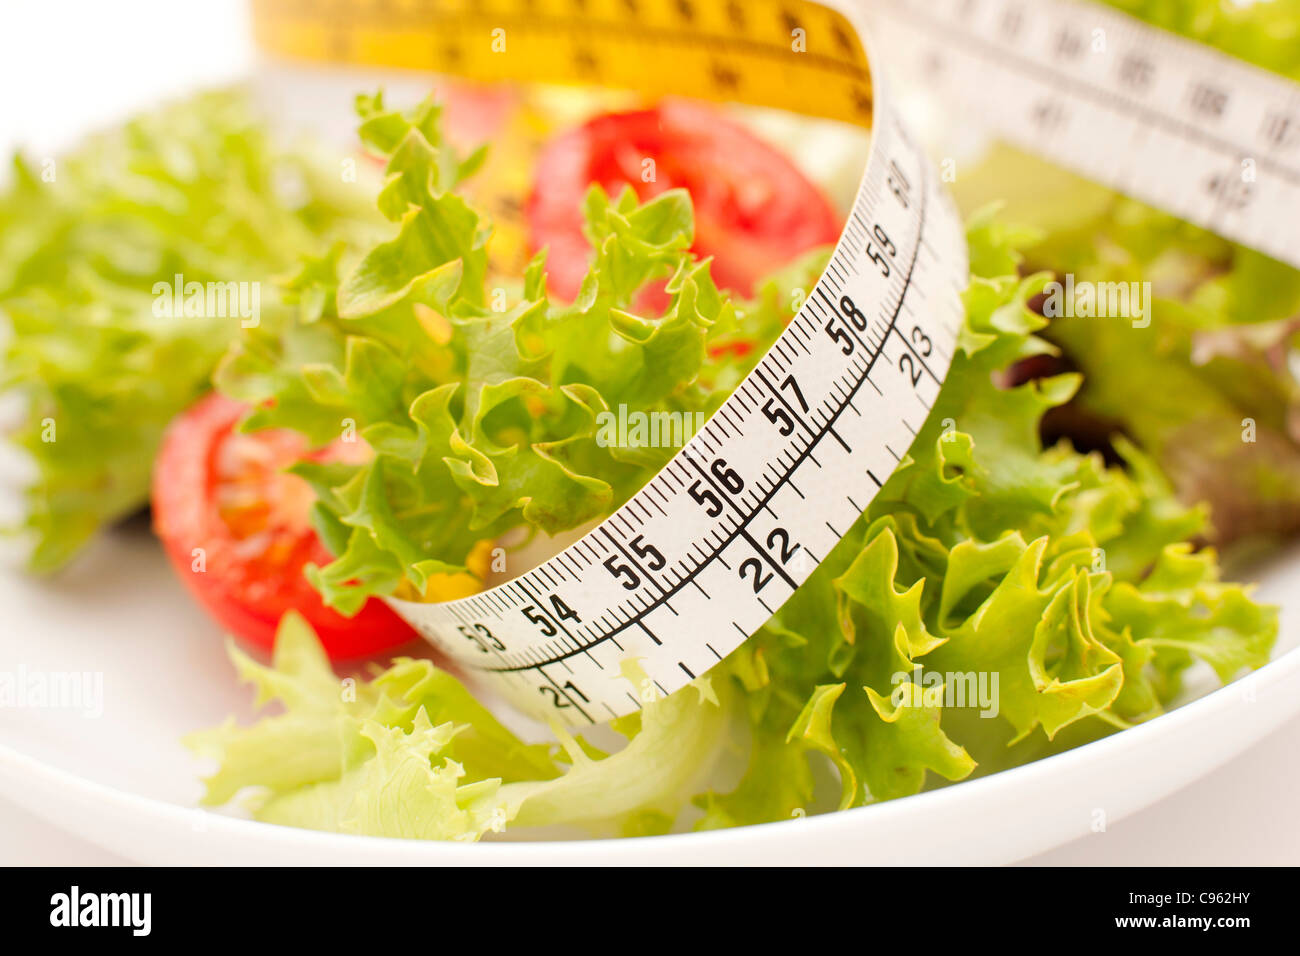 Dieting, conceptual image. Stock Photo